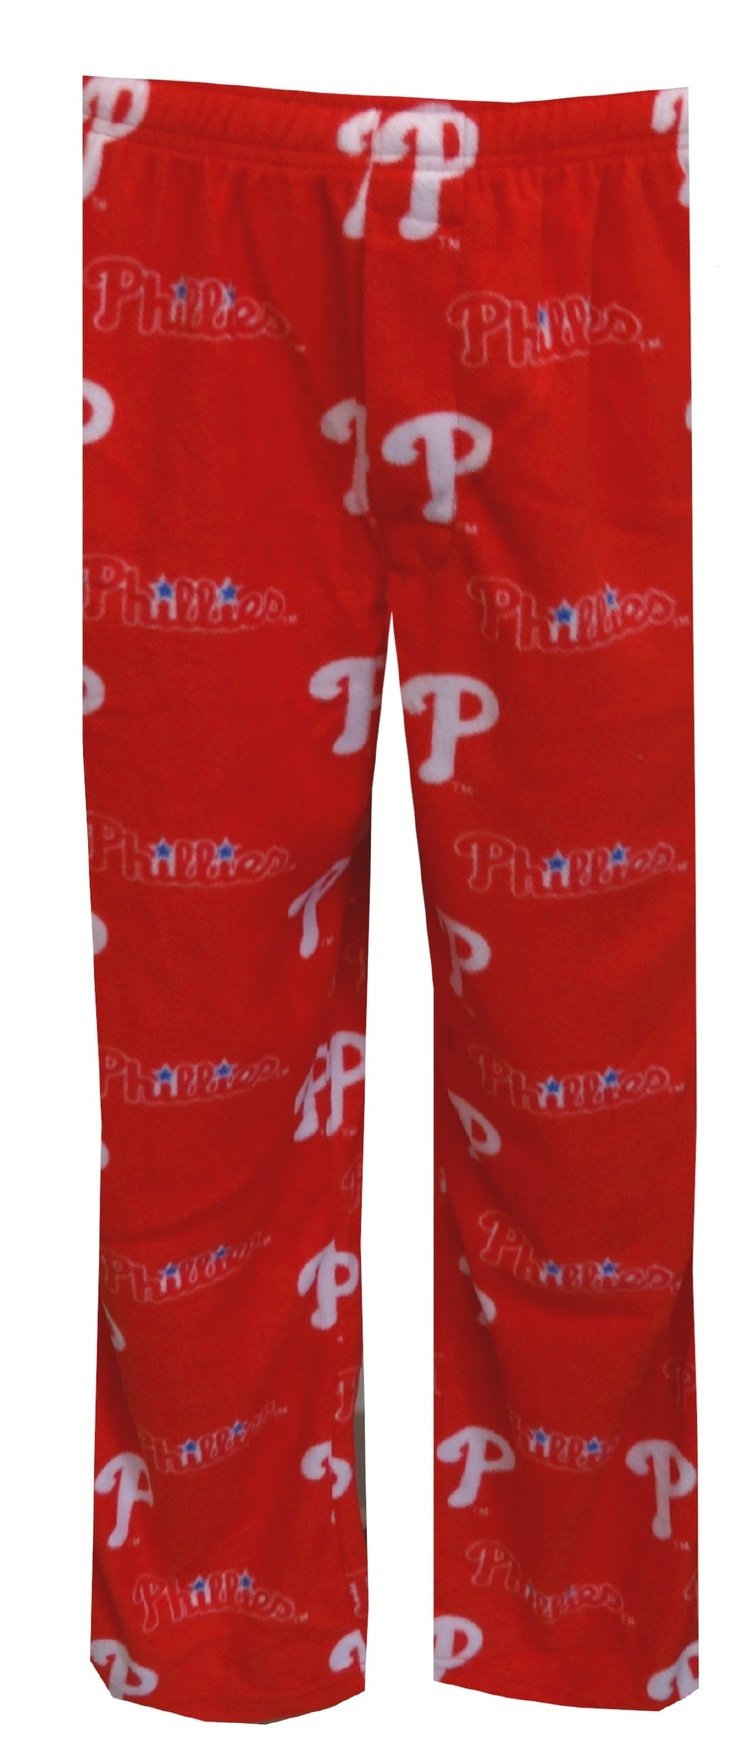 Philadelphia Phillies Logo Guys Fleece Lounge Pants  Show your team spirit! These soft and cozy fleece lounge pants feature the Philadelphia Phillies Trademark Logo in an all-over print on a bright red background. Machine washable with an open fly, side pockets and covered elastic waistband with drawstring tie. Sized up to 2X, $25